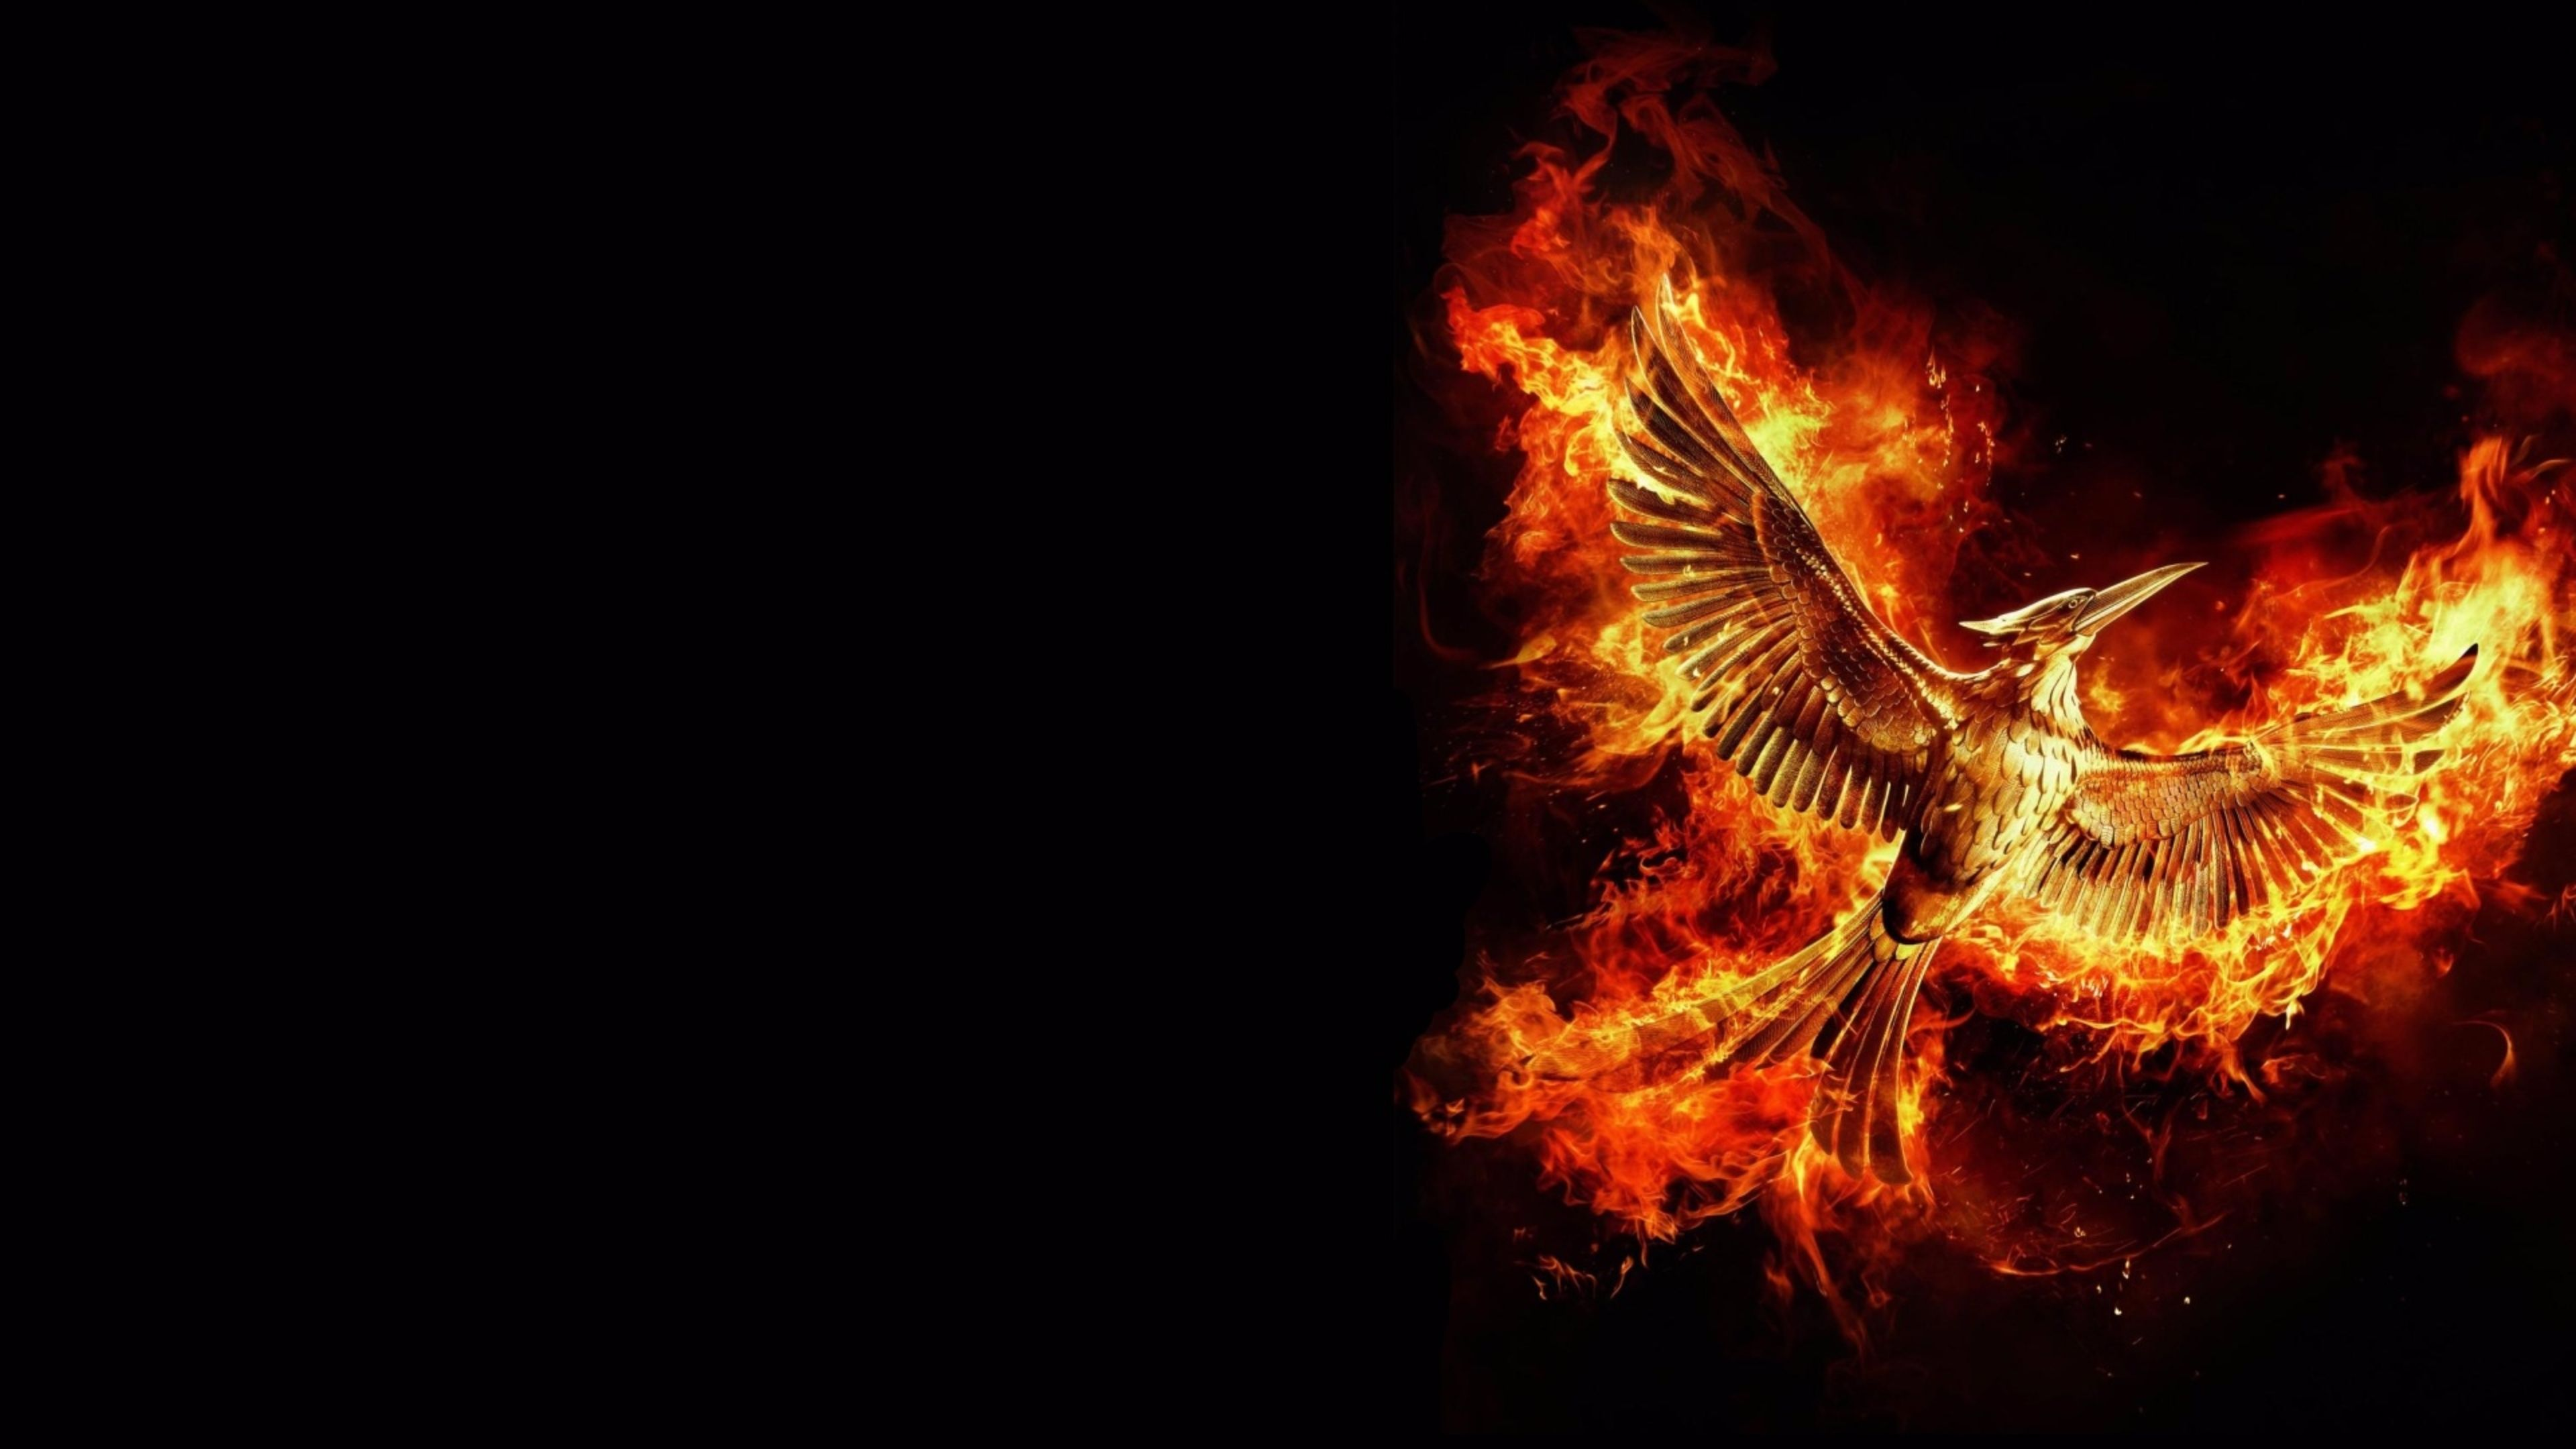 The Hunger Games Mockingjay   Part 2 Wallpapers and Background 3840x2160